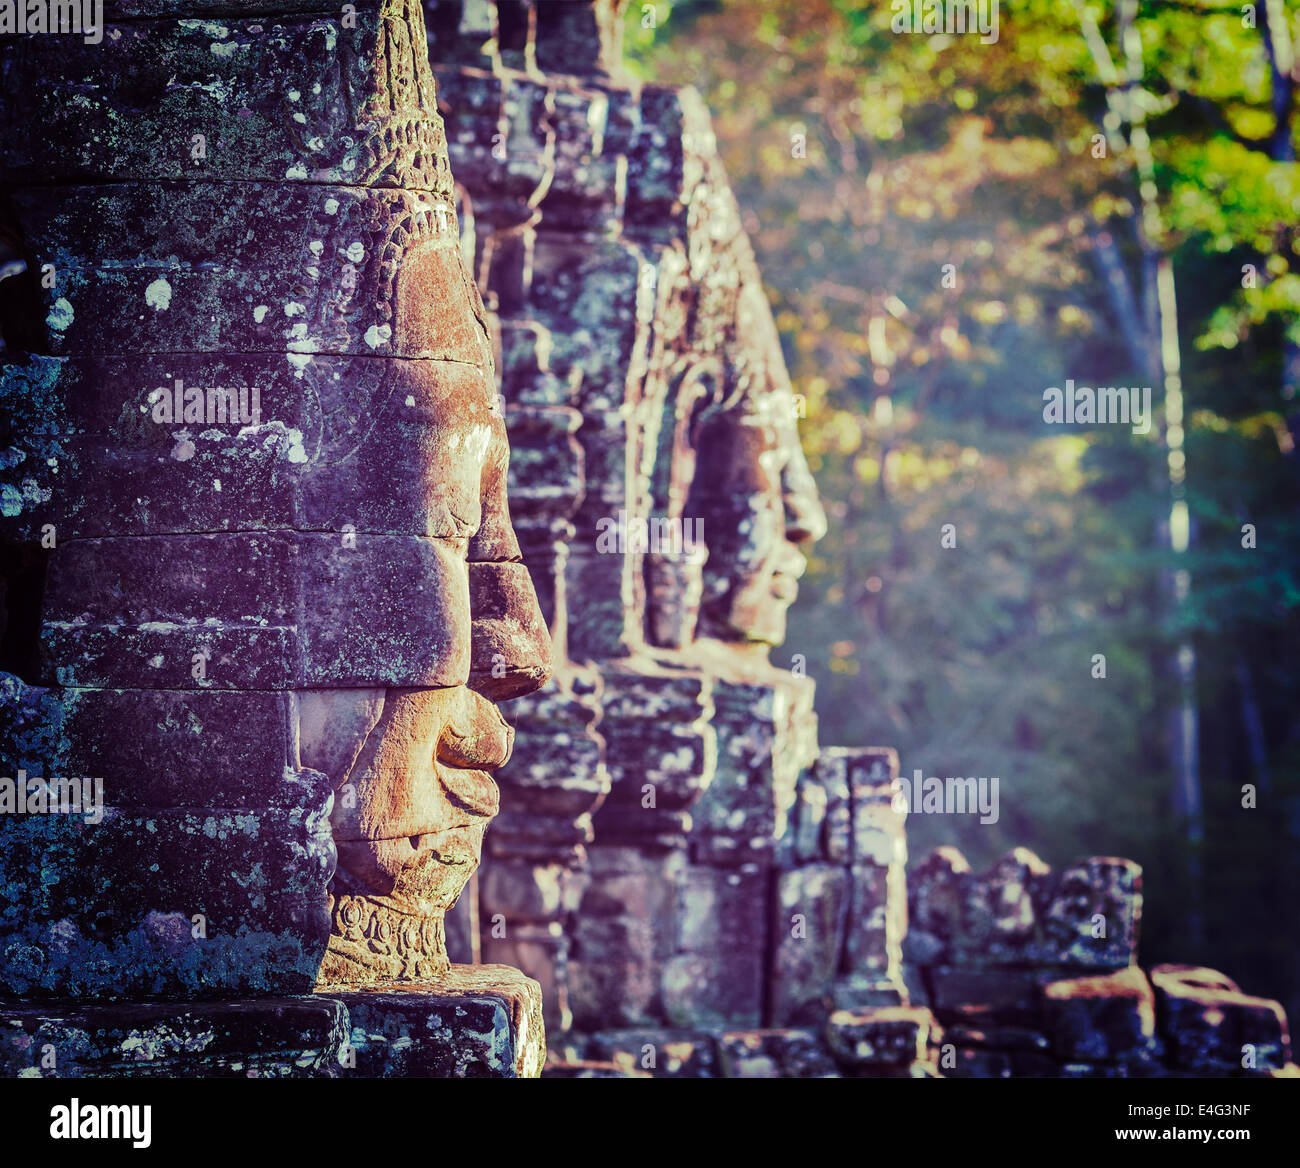 Vintage retro effect filtered hipster style travel image of Ancient stone faces of Bayon temple, Angkor, Cambodia - Stock Image